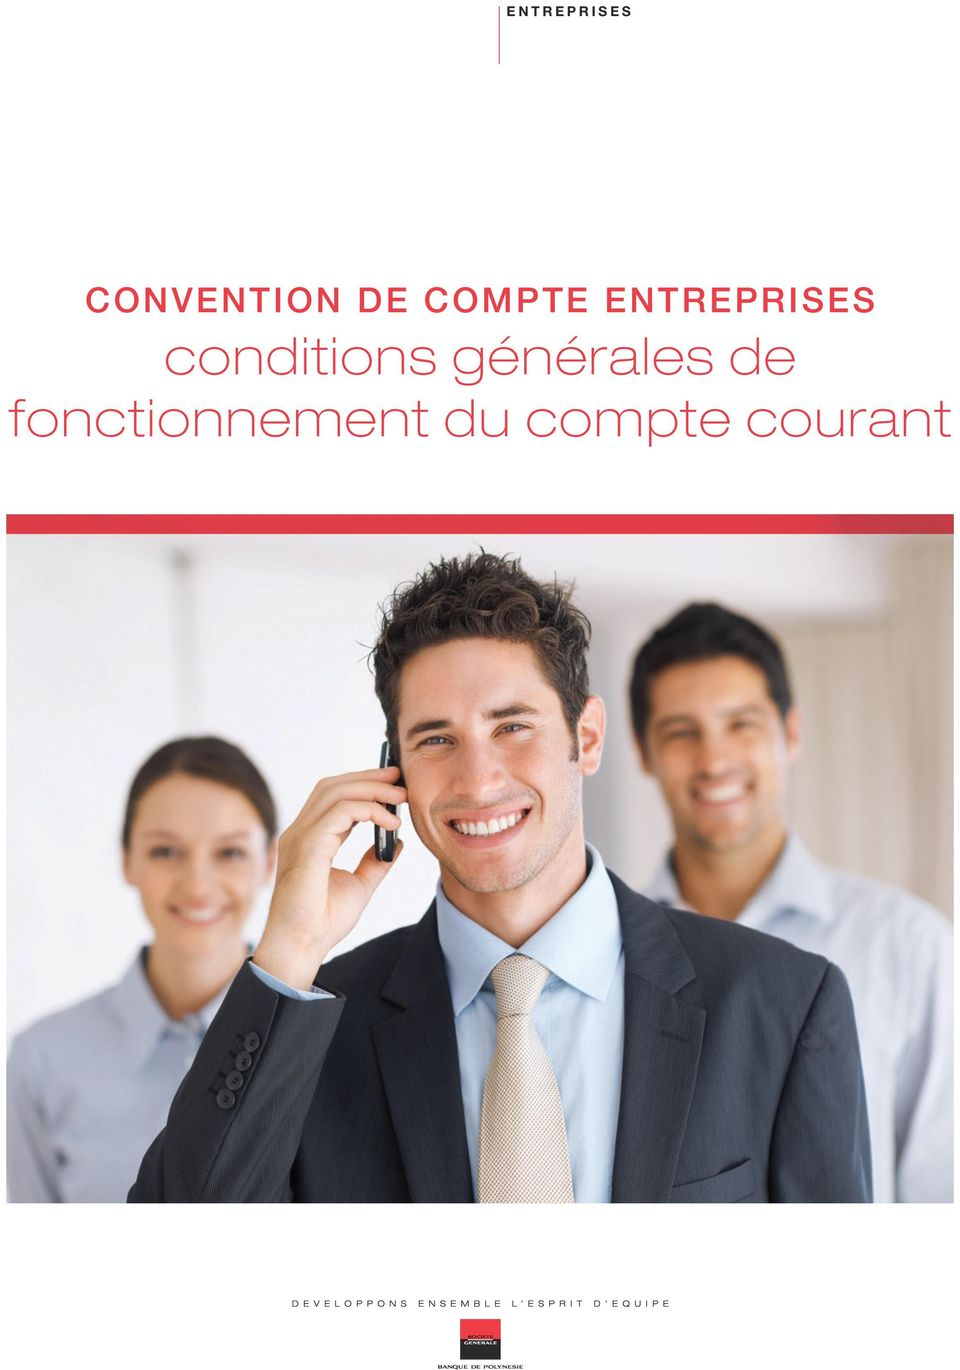 ENTREPRISES conditions